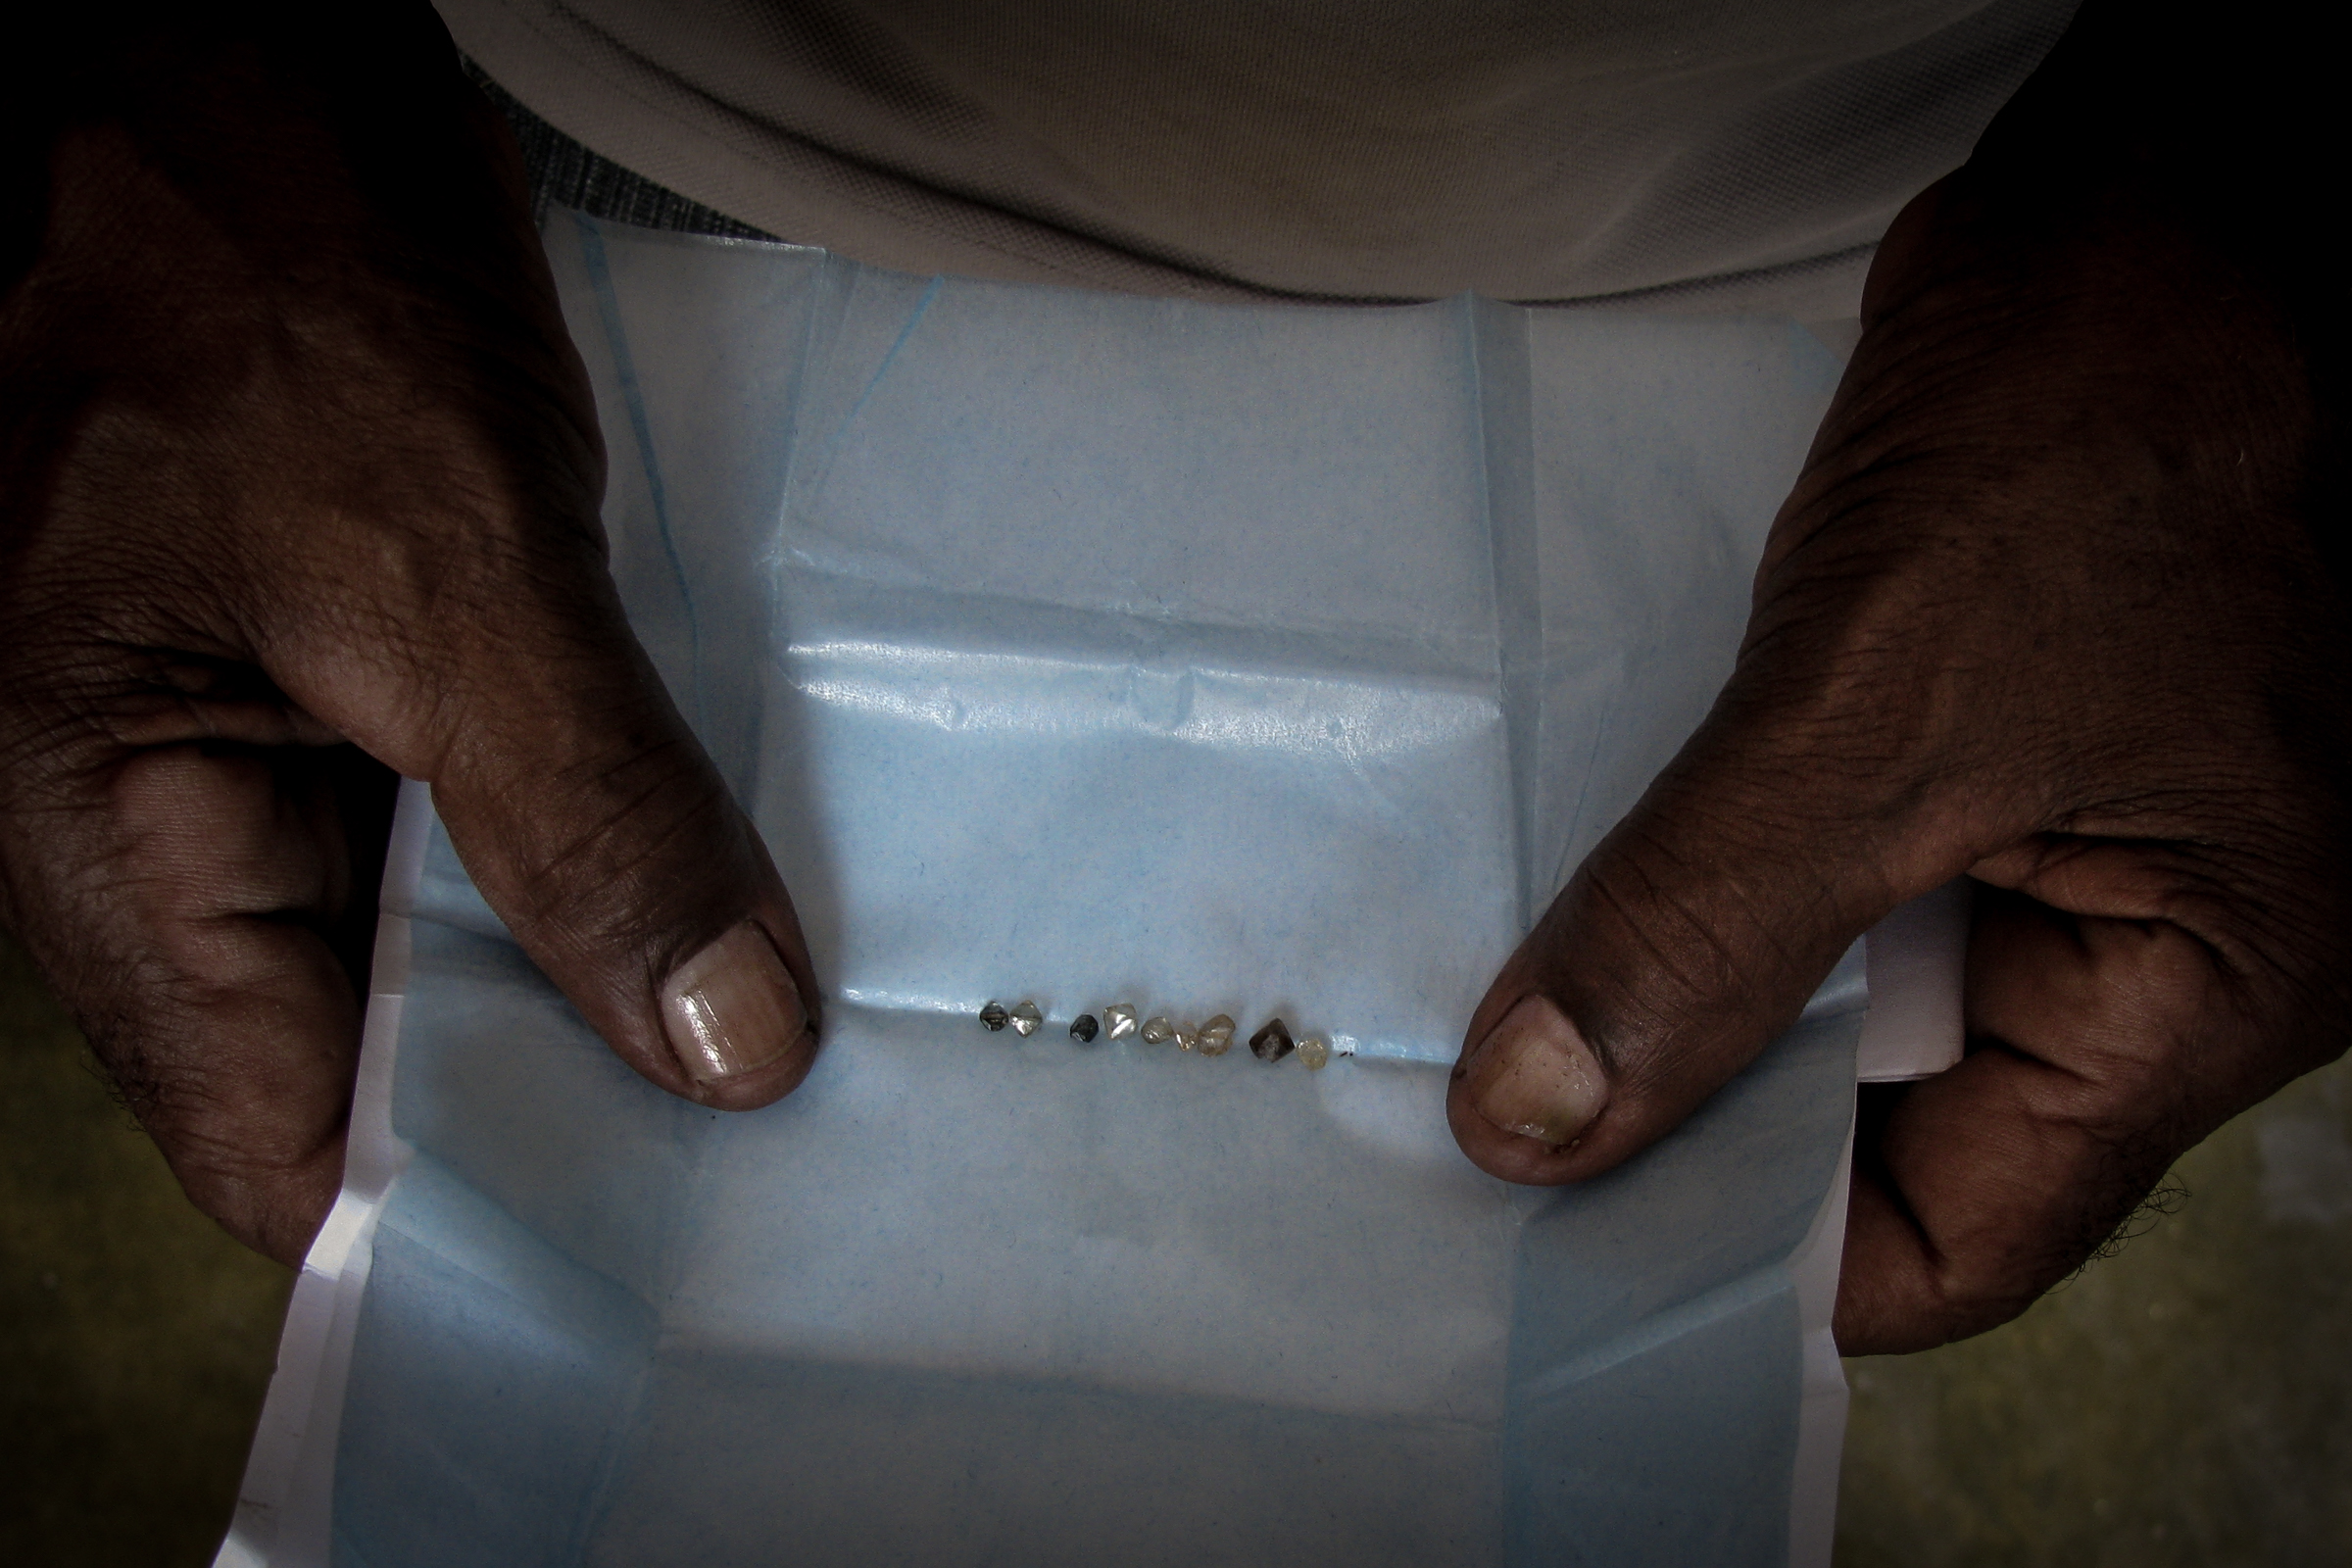 A miner displays a haul of diamonds extracted from streams in Chapada Diamantina, Bahia State using the same methods his ancestors used more than two centuries ago. These mining traditions have had an impact on the Campo Rupestre but may themselves be affected by large-scale development.